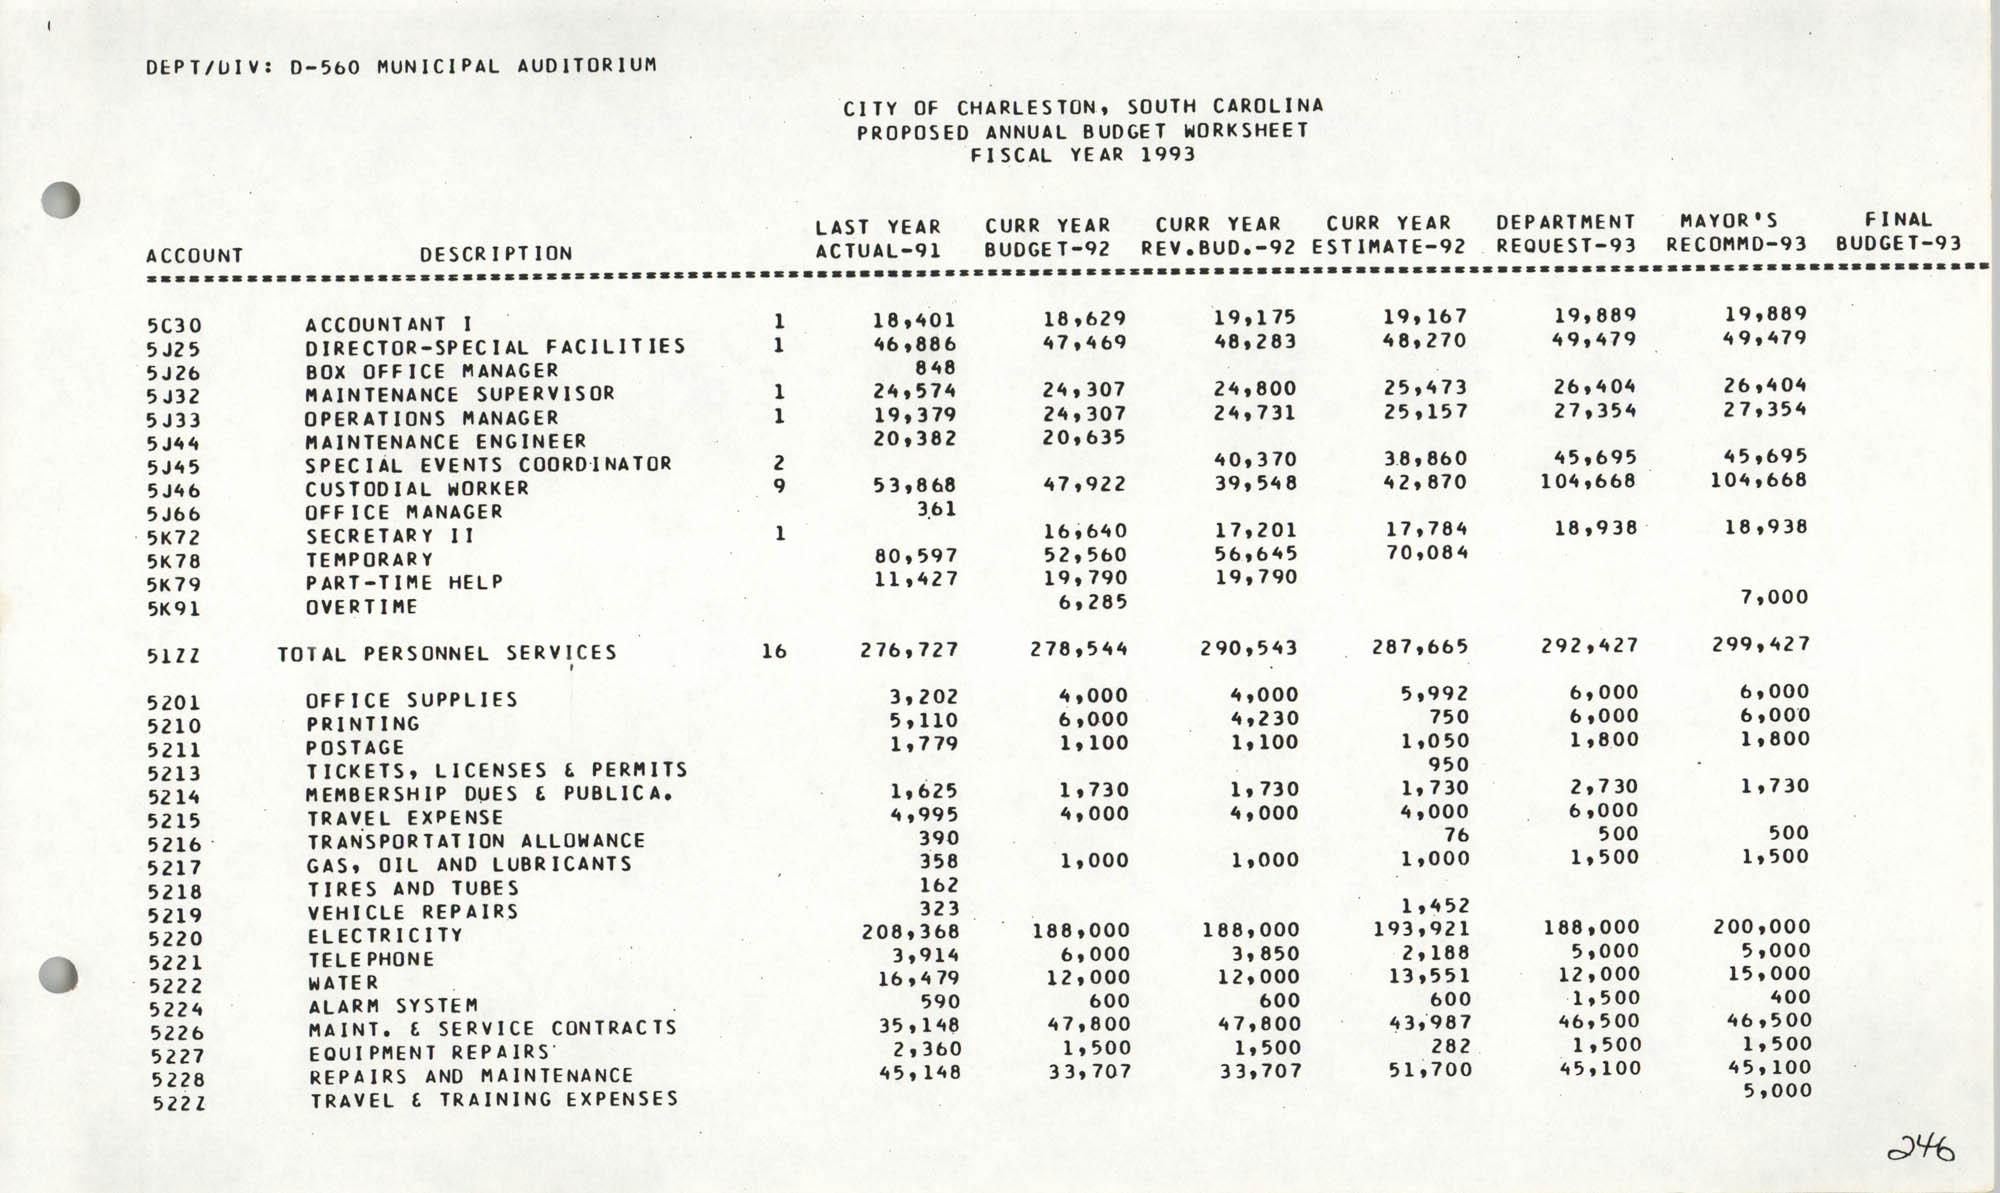 The City Council of Charleston, South Carolina, 1993 Budget, Page 246